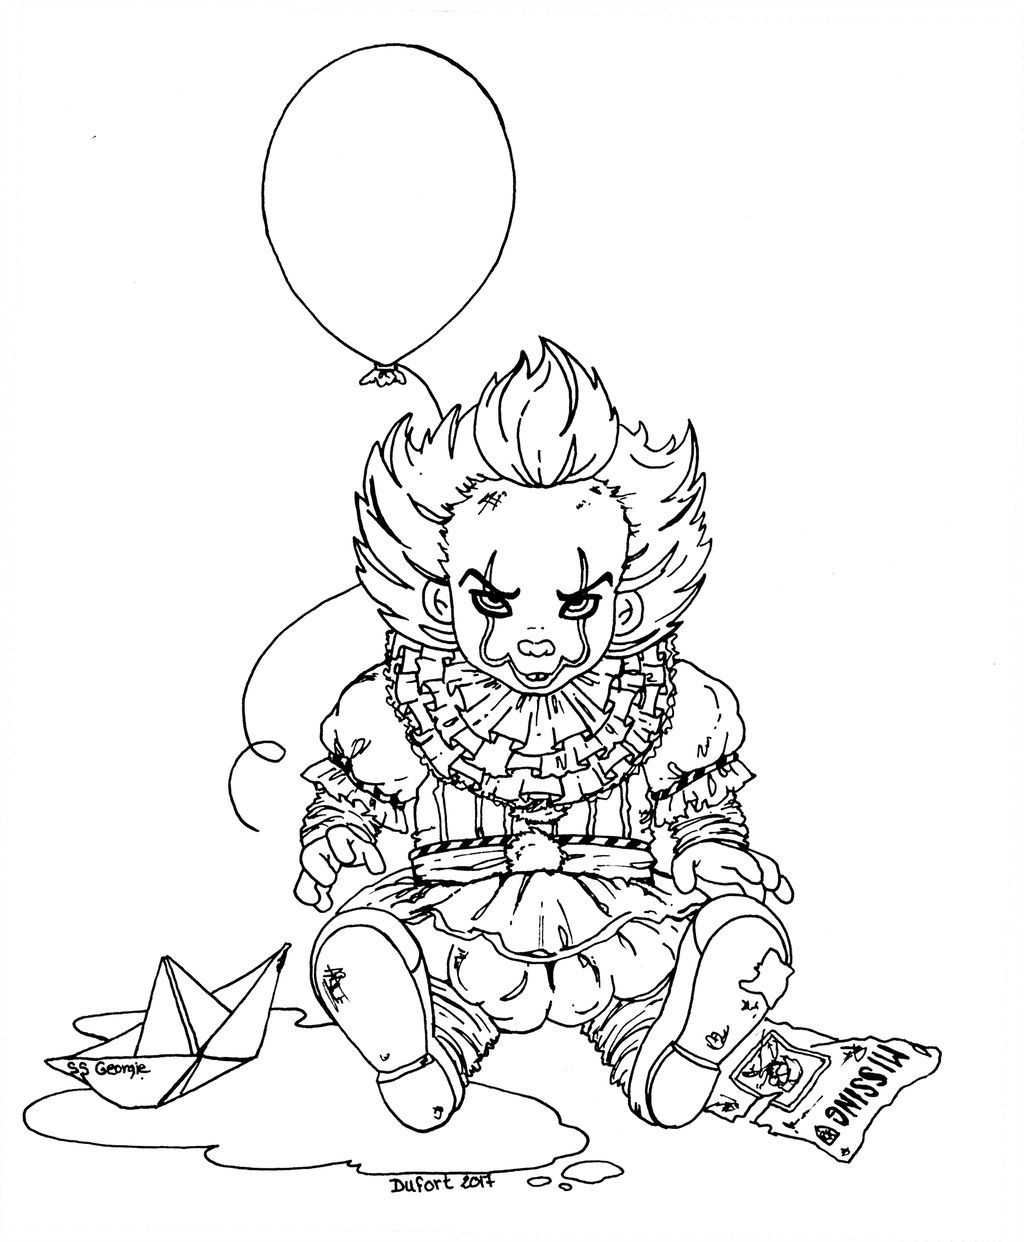 Pennywise Coloring Pages - Coloring Home